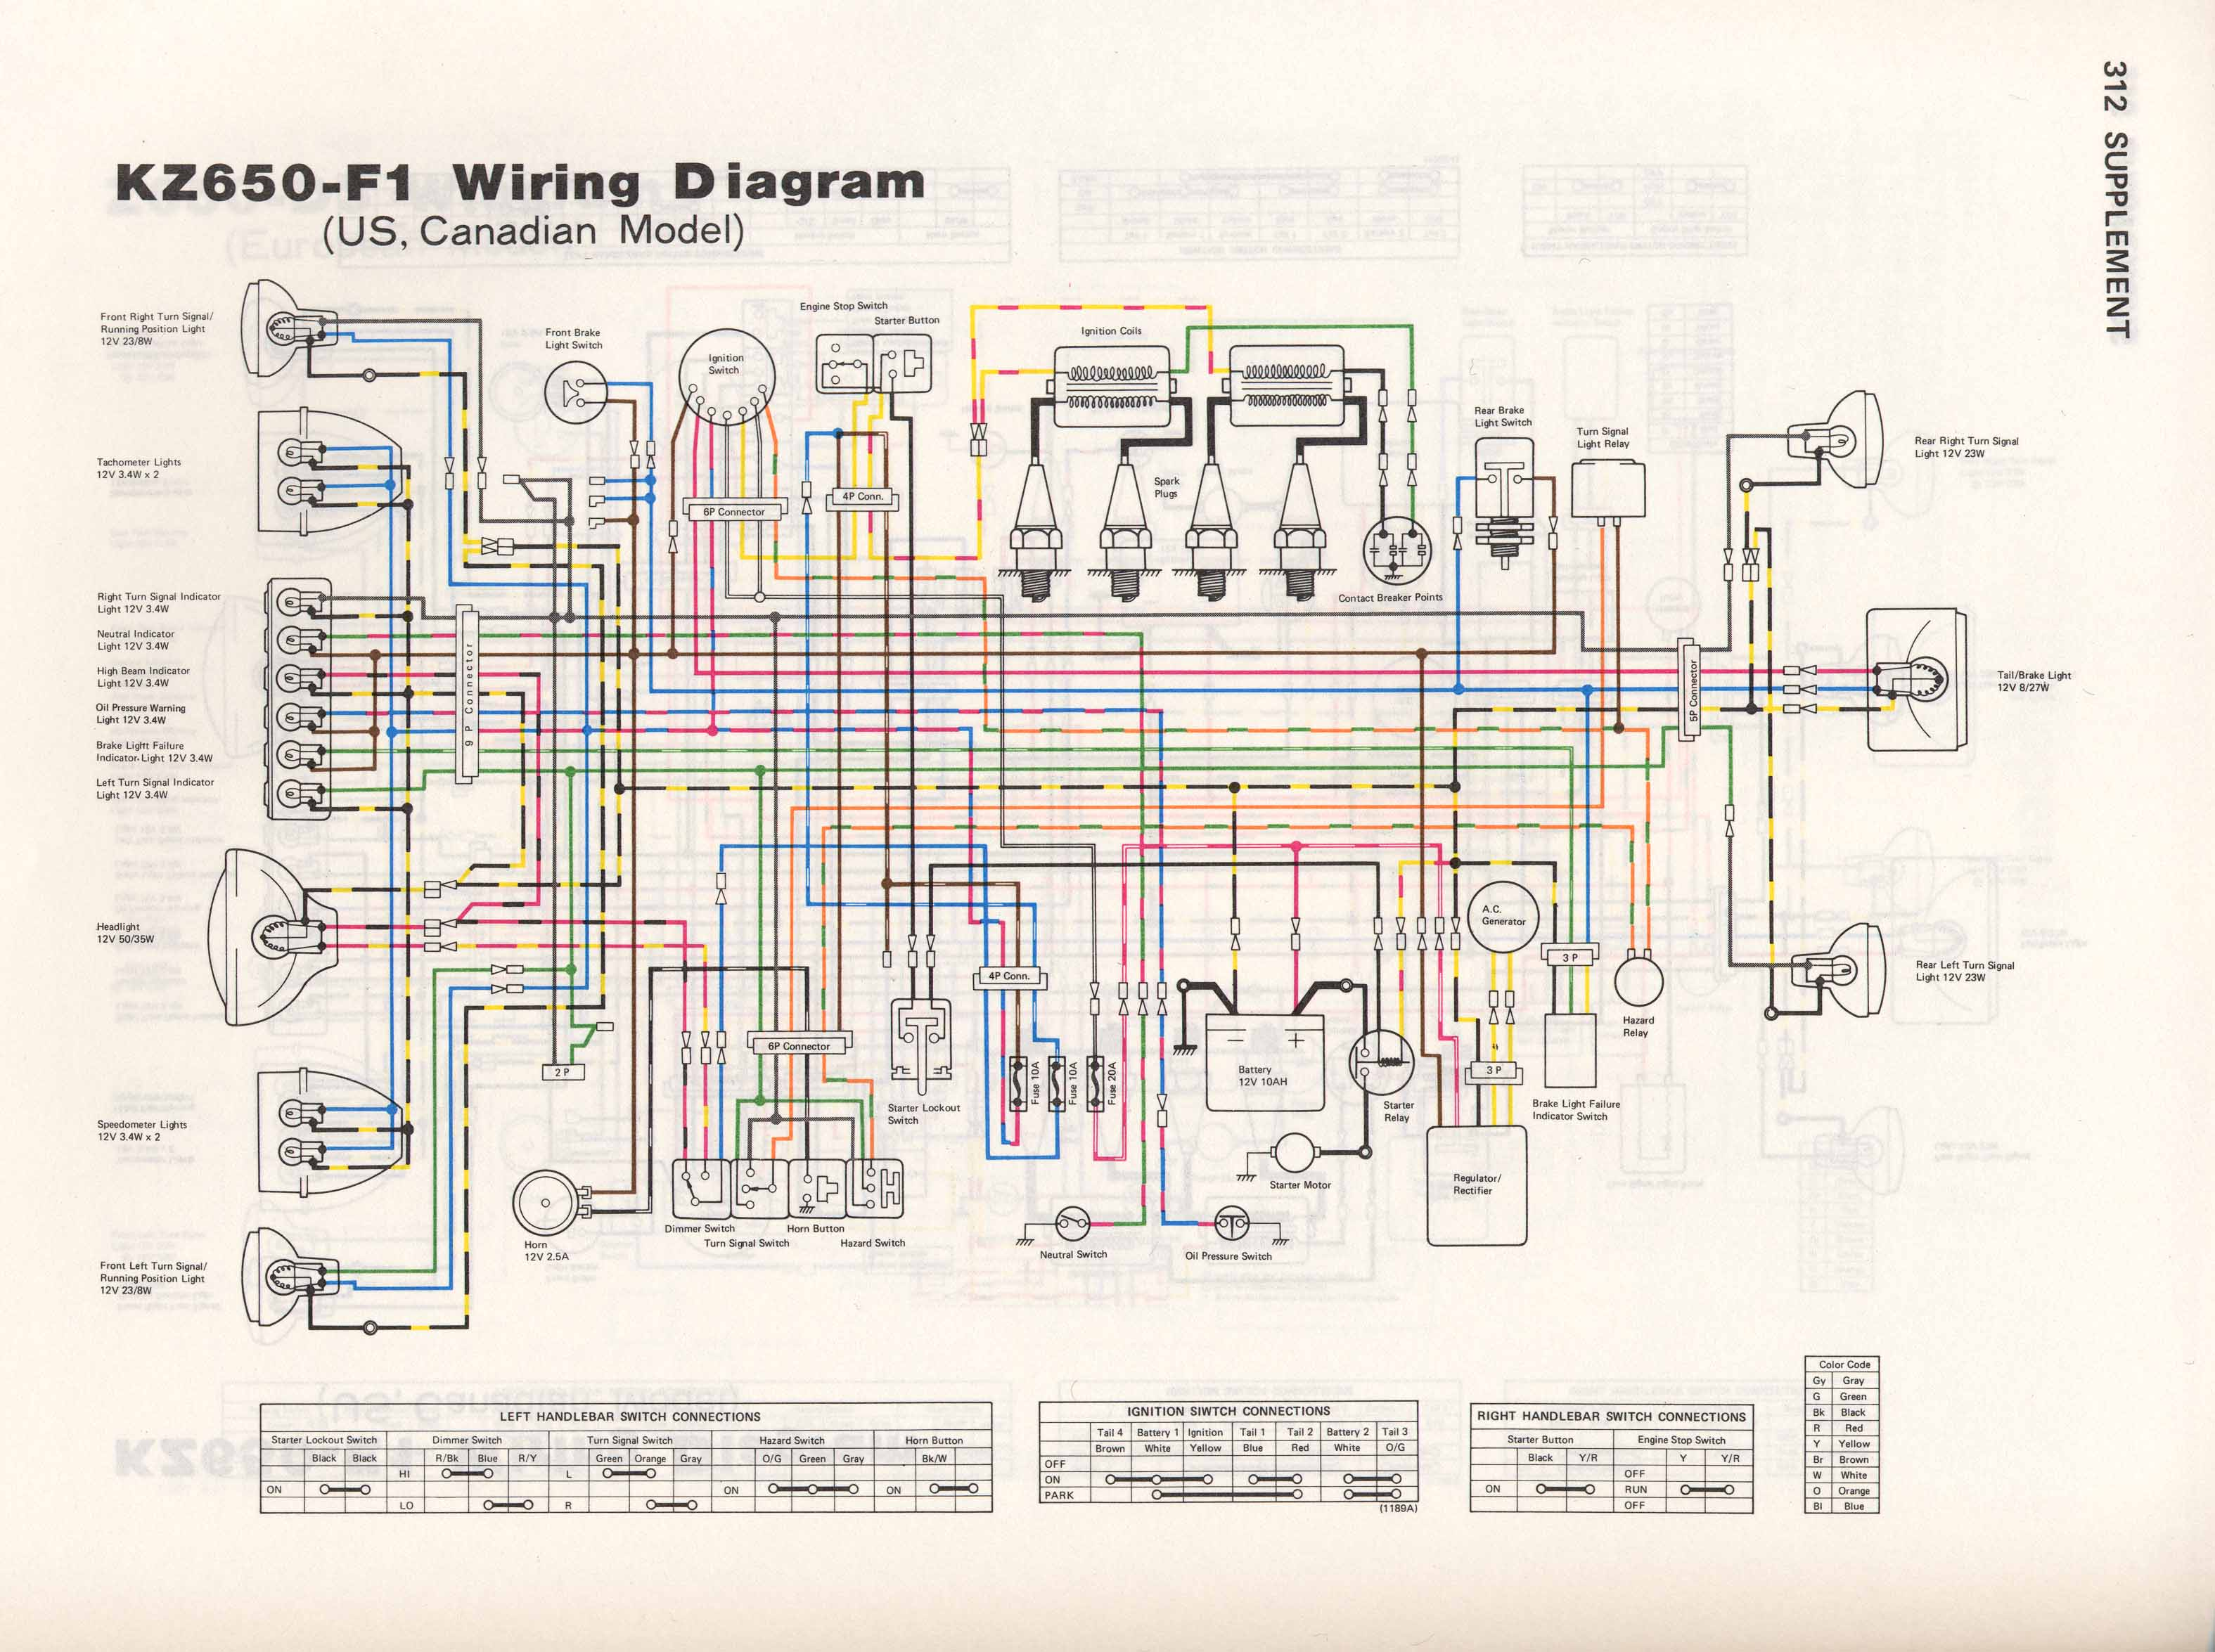 Kawasaki Ninja 250r Wiring Diagram Speedometer Instruction Honda Cbr1000rr Kz650 Info Diagrams Rh Bajaj Chetak Magna